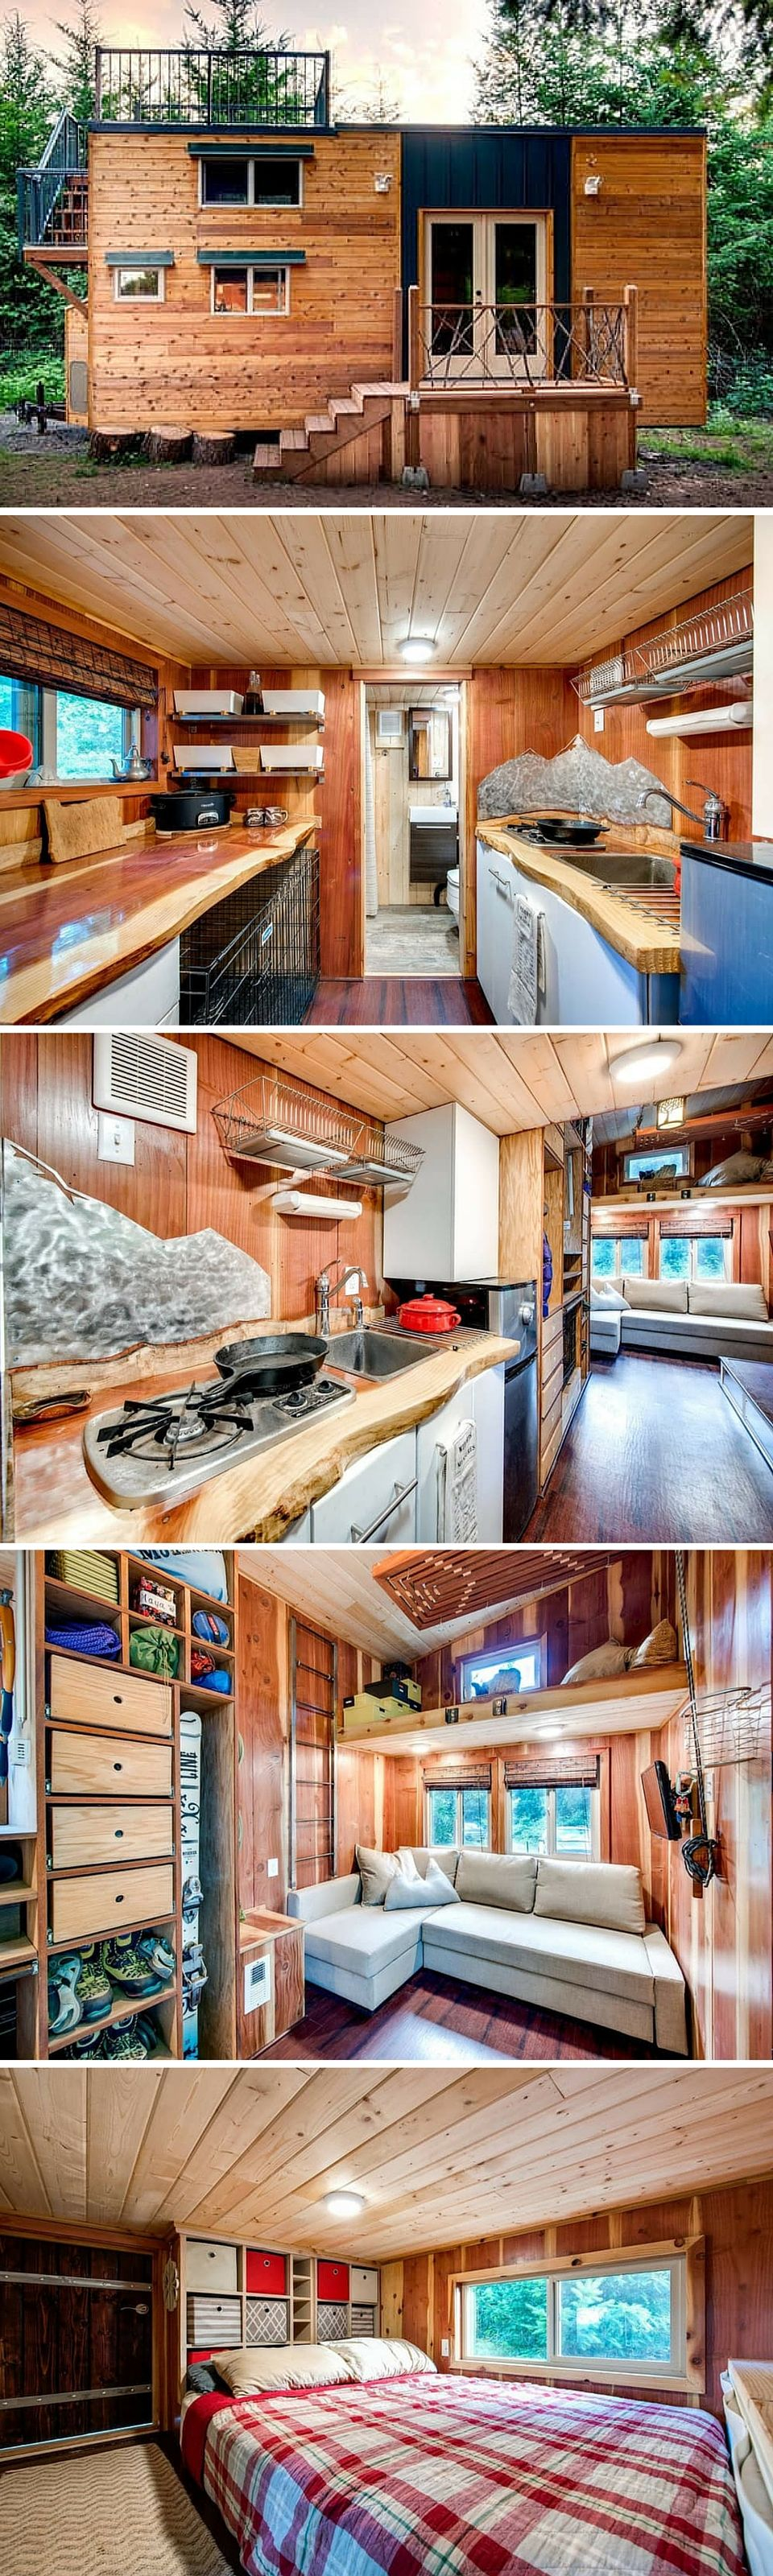 Tiny Home Designs: The Basecamp: A Tiny House Designed By Two Engineers. The